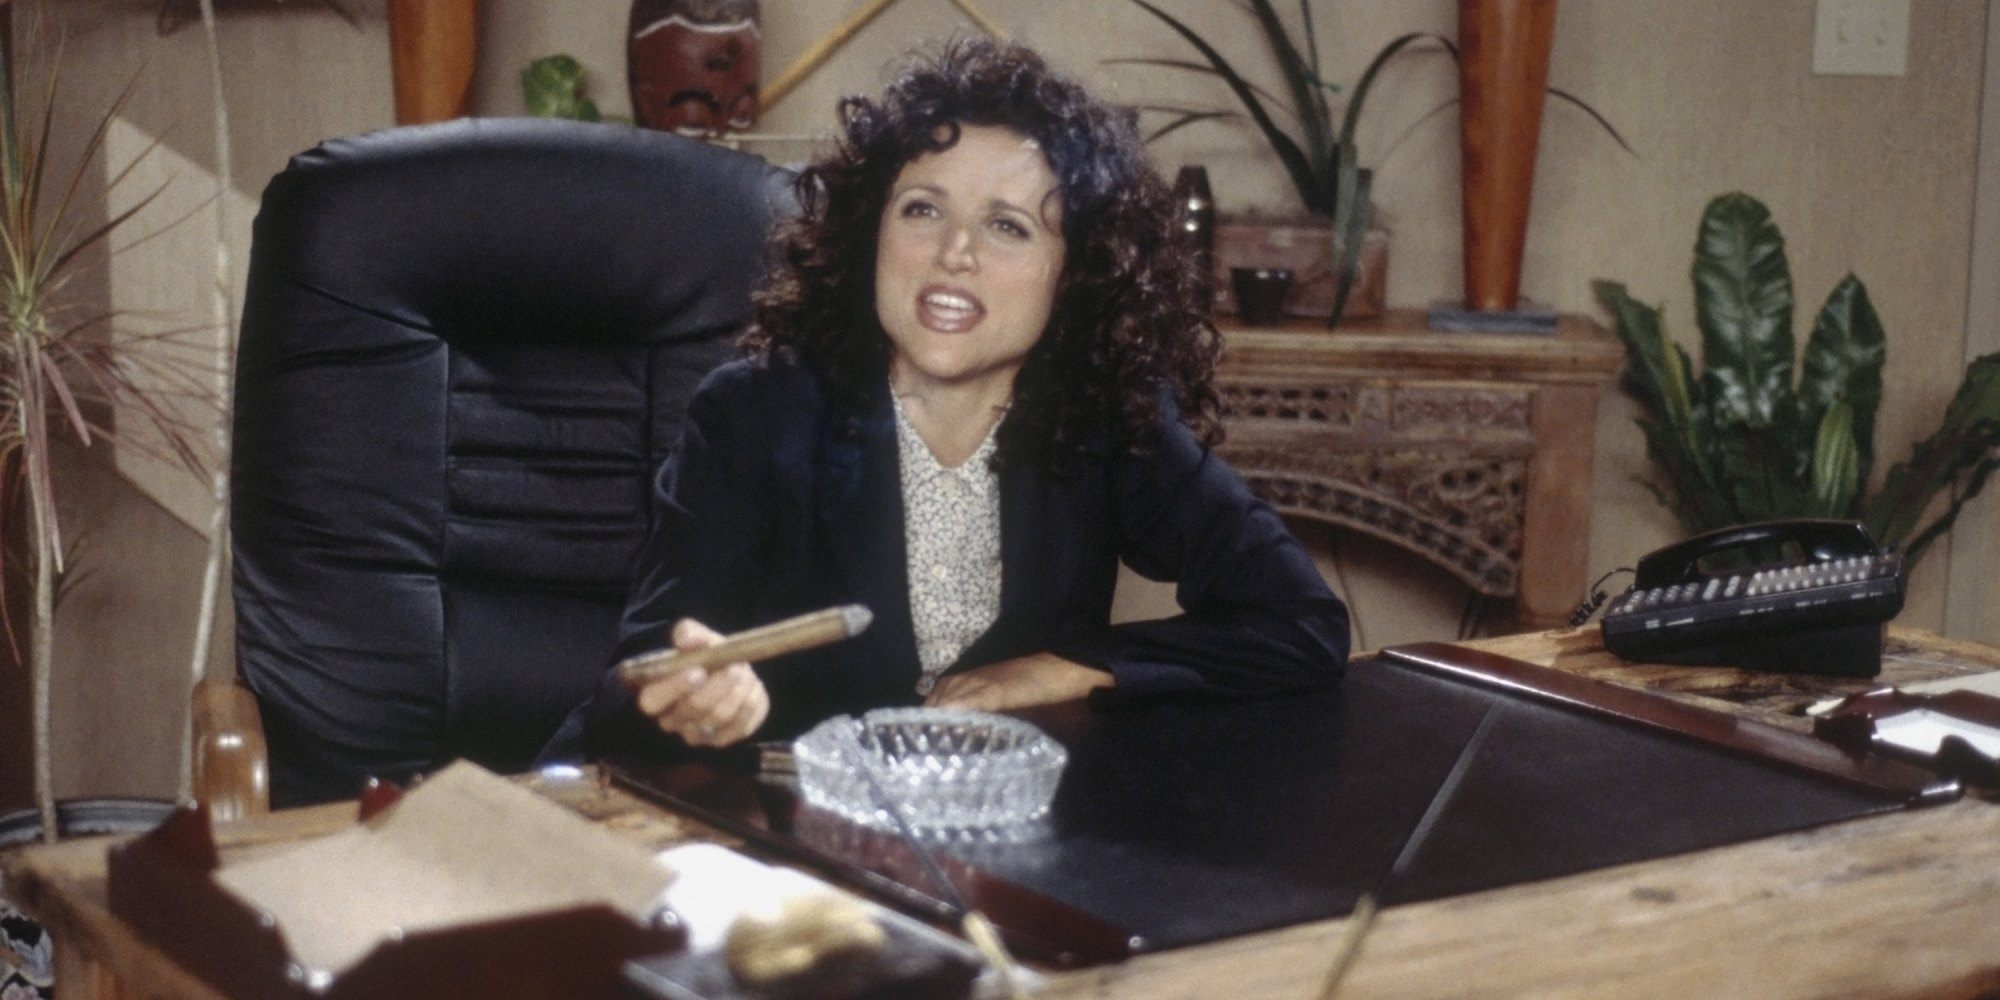 Elaine sits at a desk with a cigar